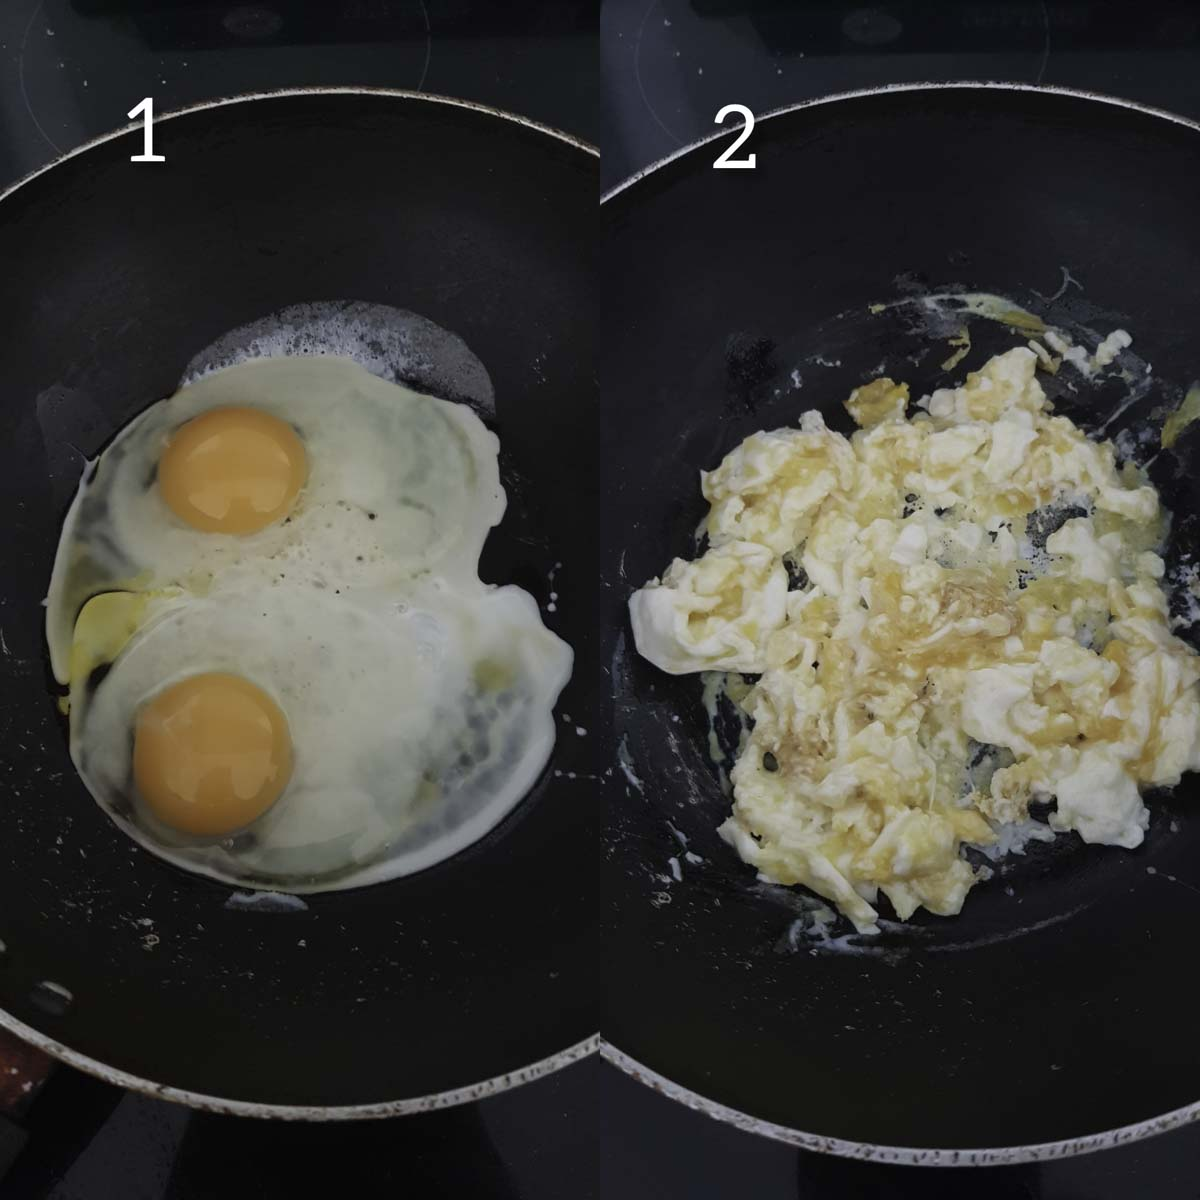 collage of steps showing cracking eggs and scrambling them